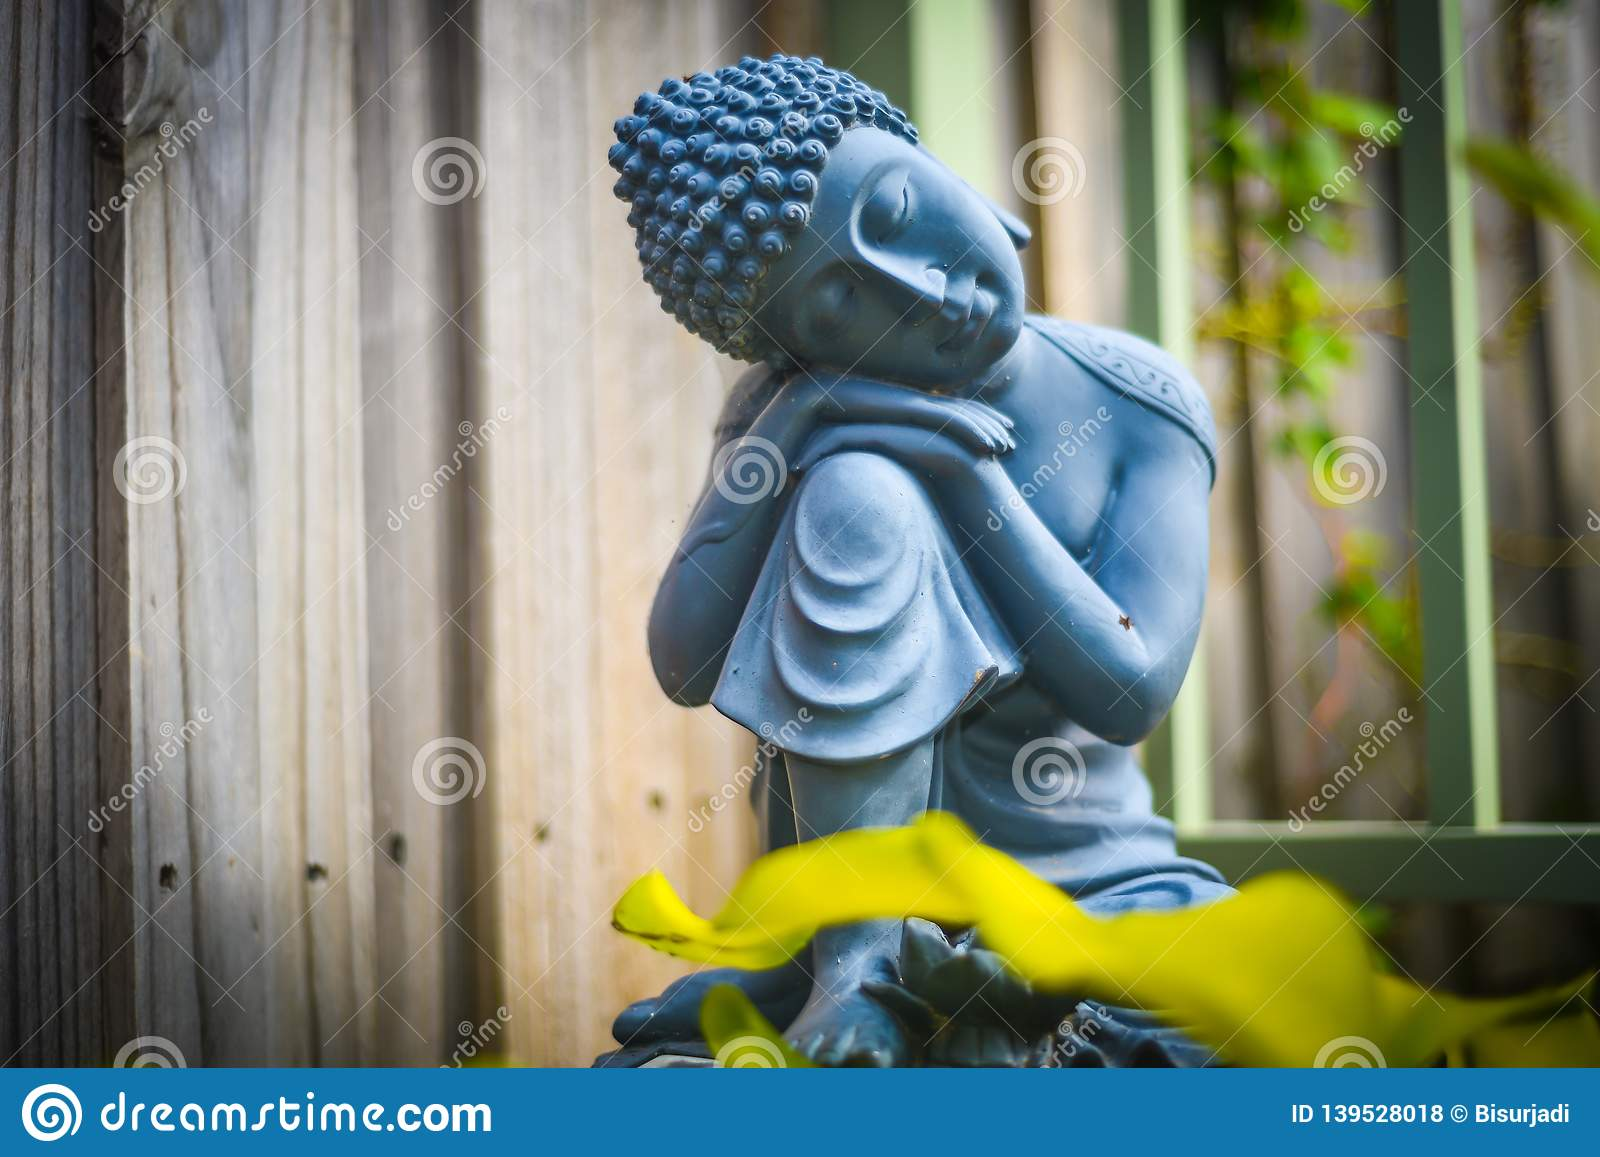 Black And White Stone Statue Of Sitting Buddha In The Garden Stock